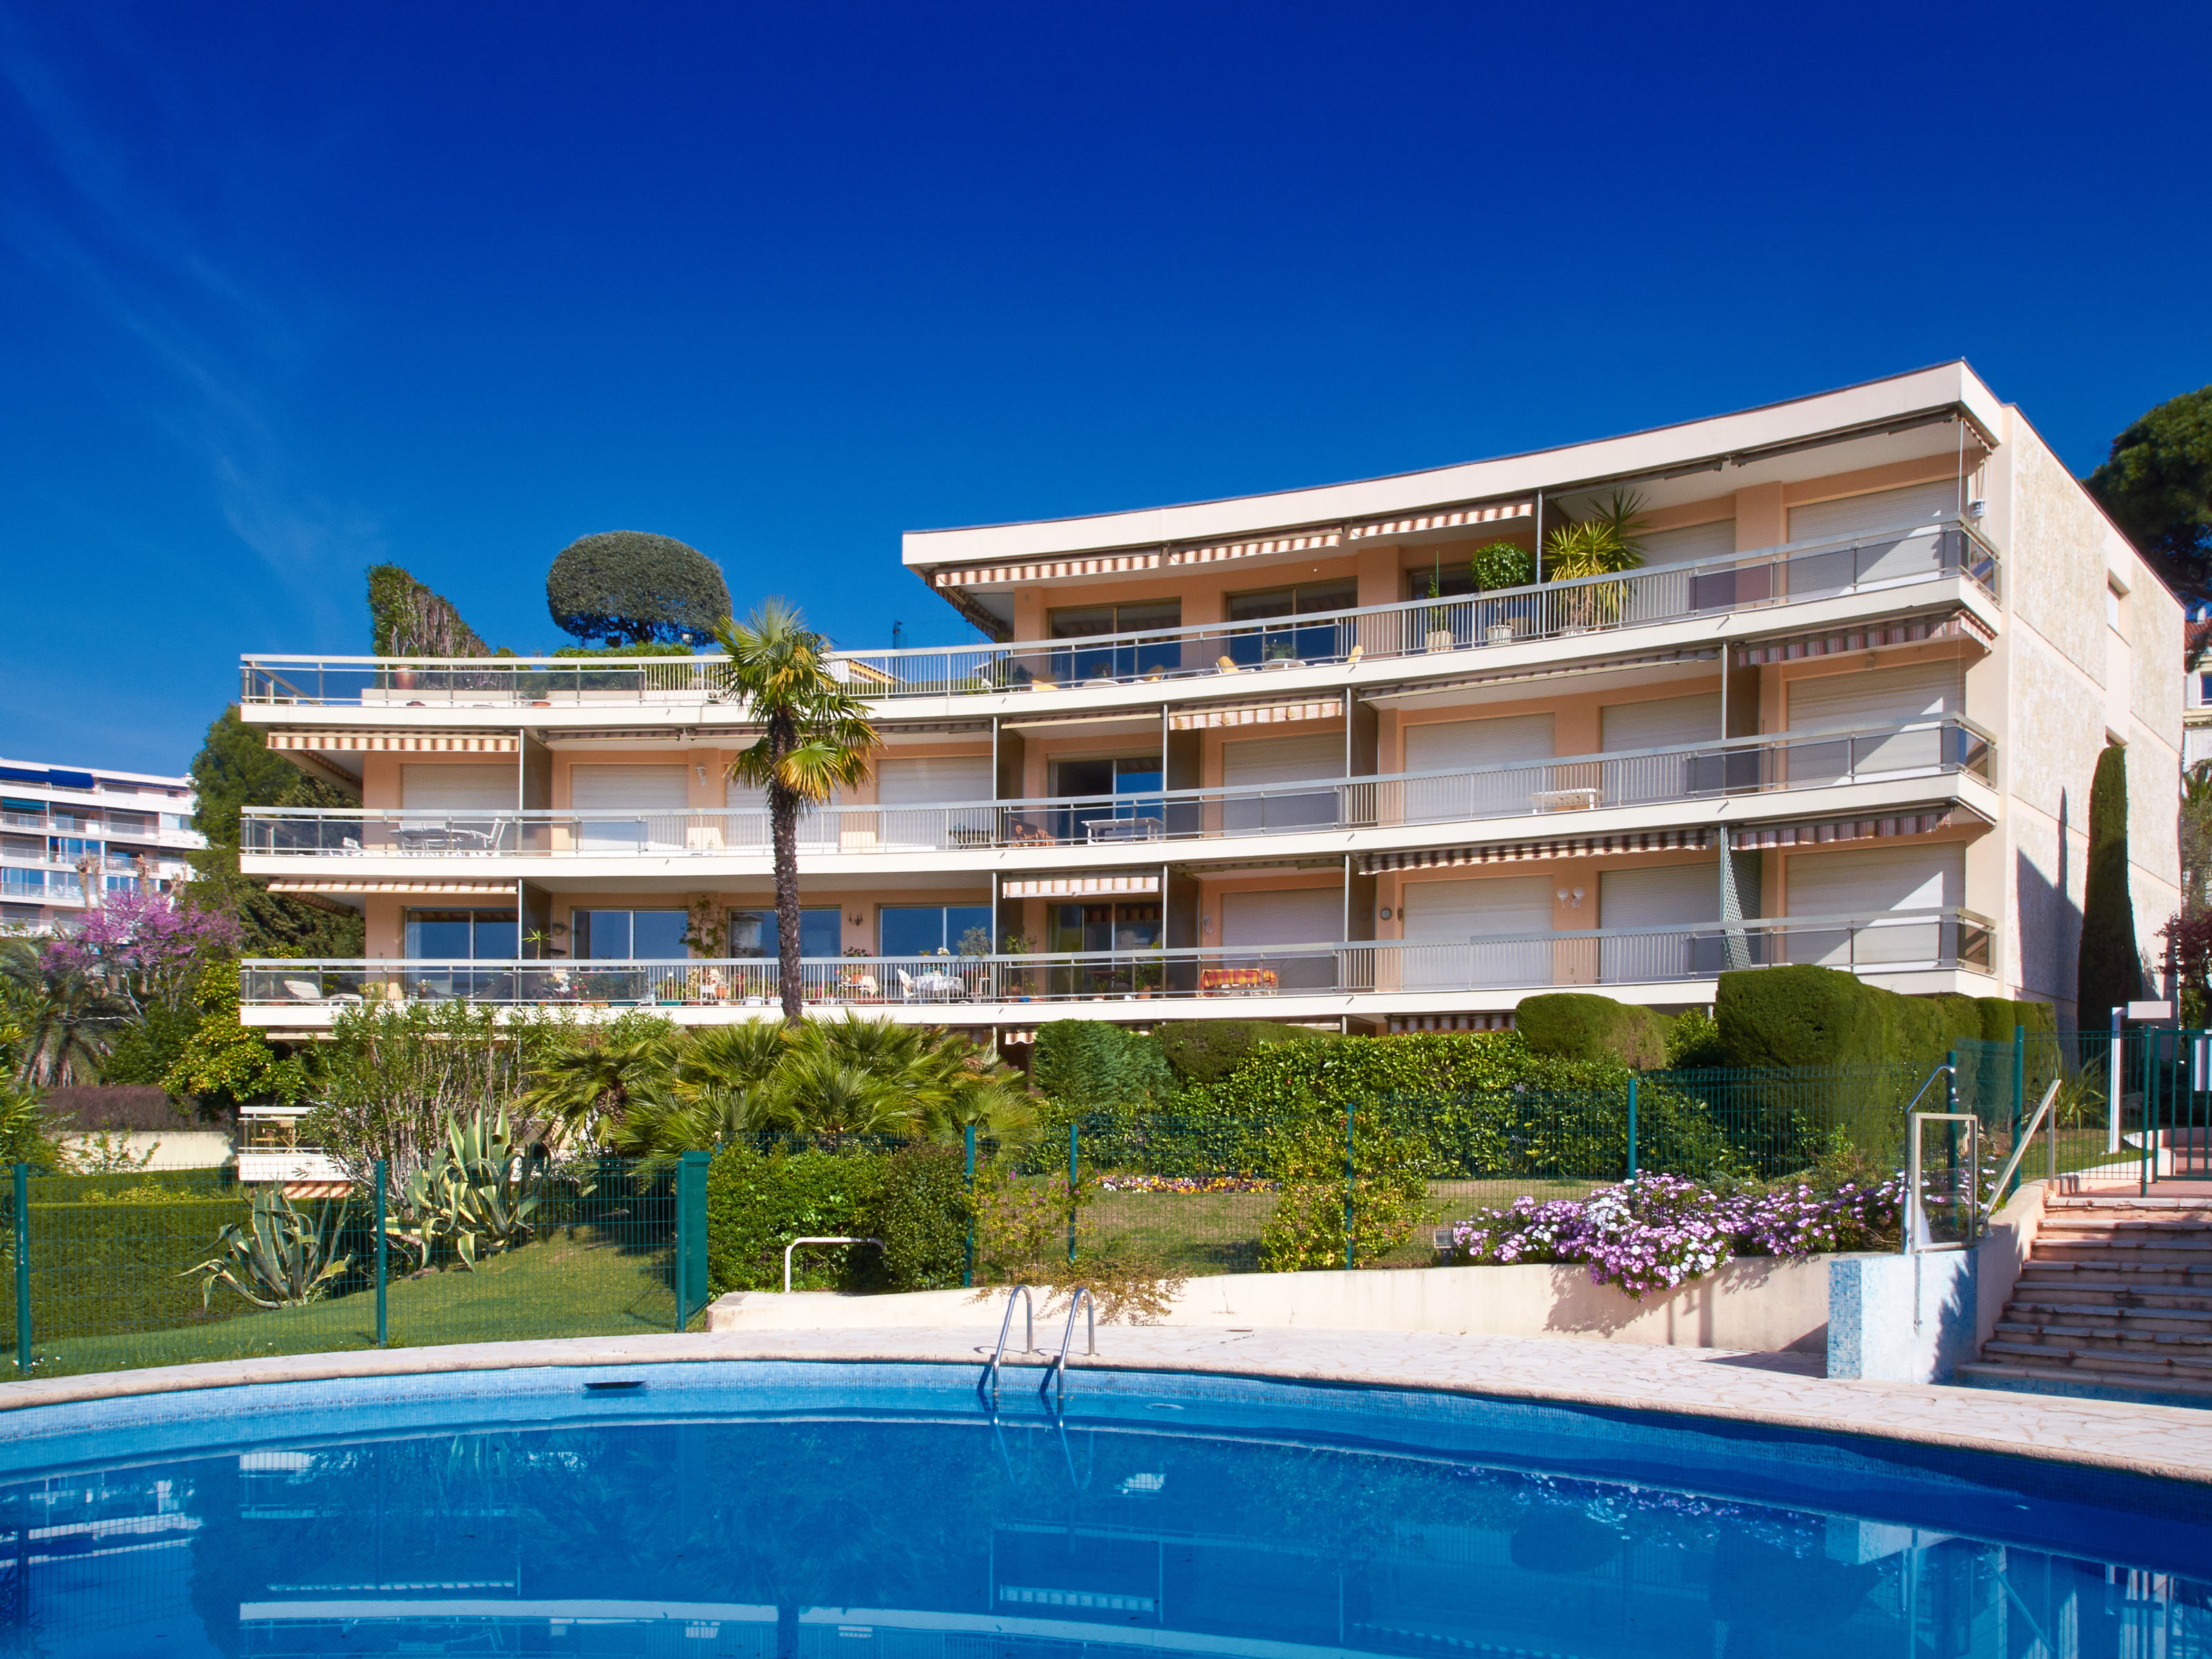 Apartamento para Venda às Sole agent - Luxury Apartment in a gated condominium Cannes, Provença-Alpes-Costa Azul 06400 França